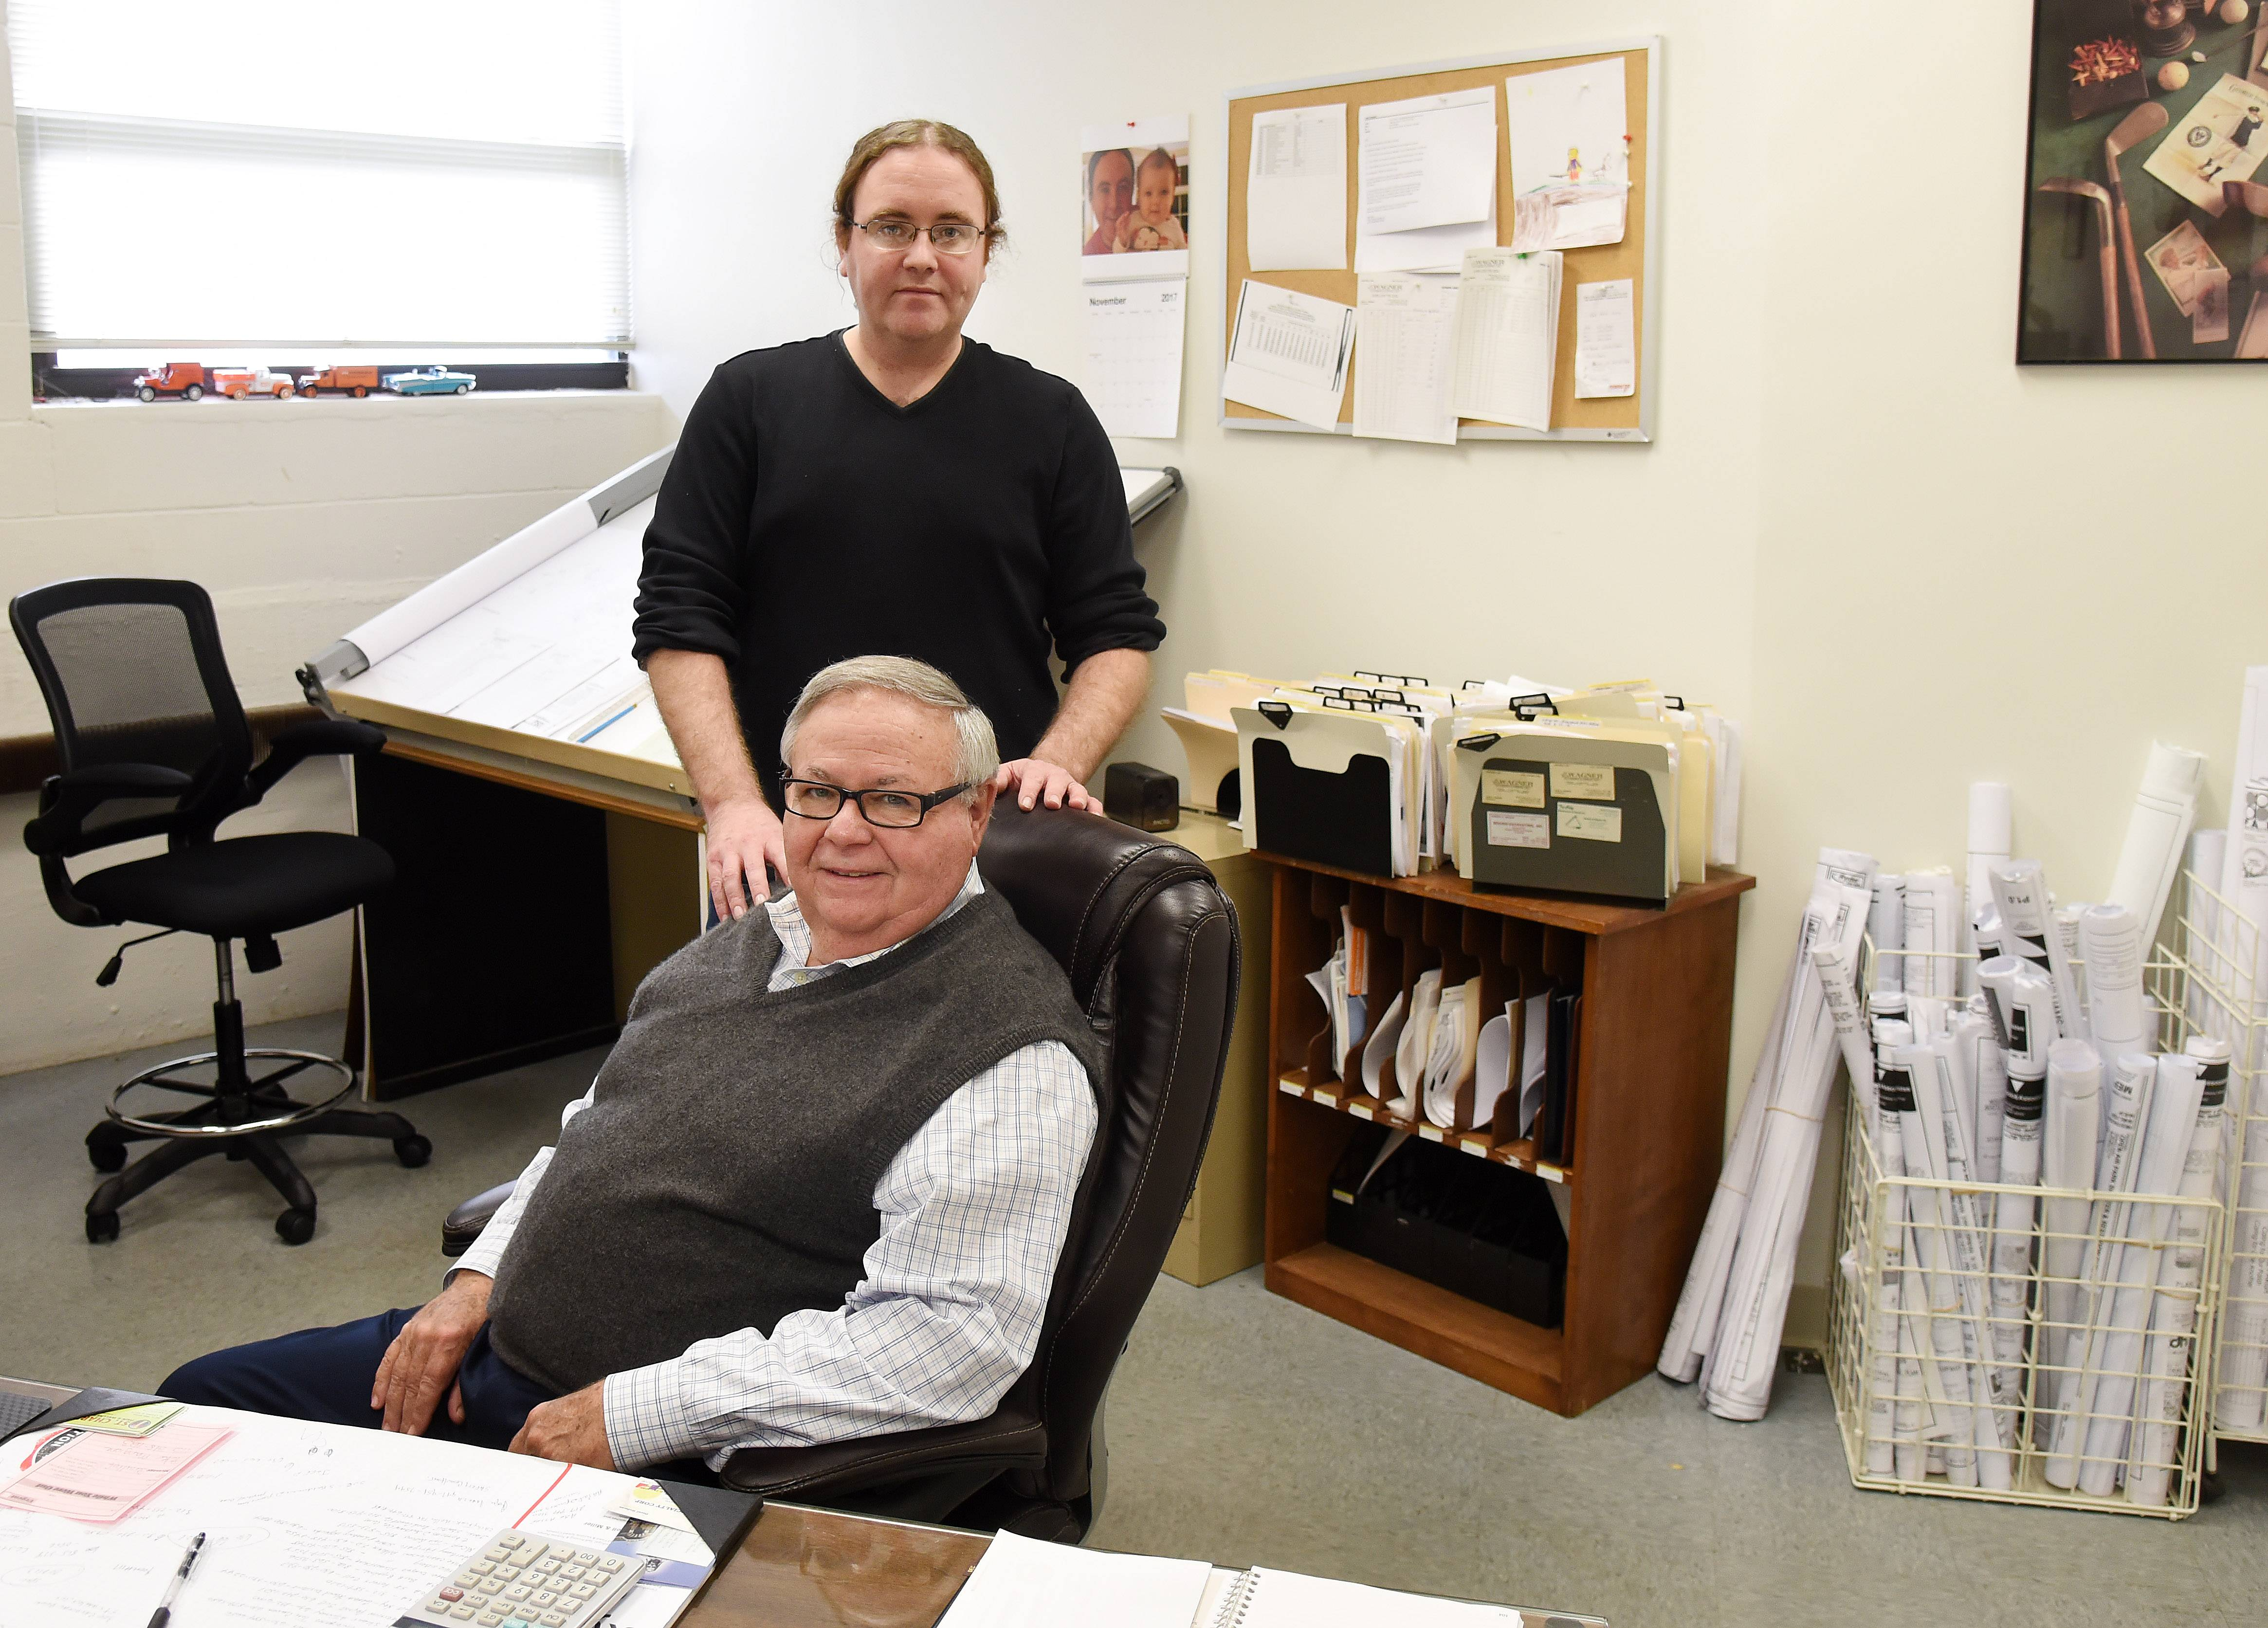 Jack Wagner and his son, Dan, are the latest caretakers in the family business, J.L. Wagner Plumbing and Piping, which has been around for more than 100 years.